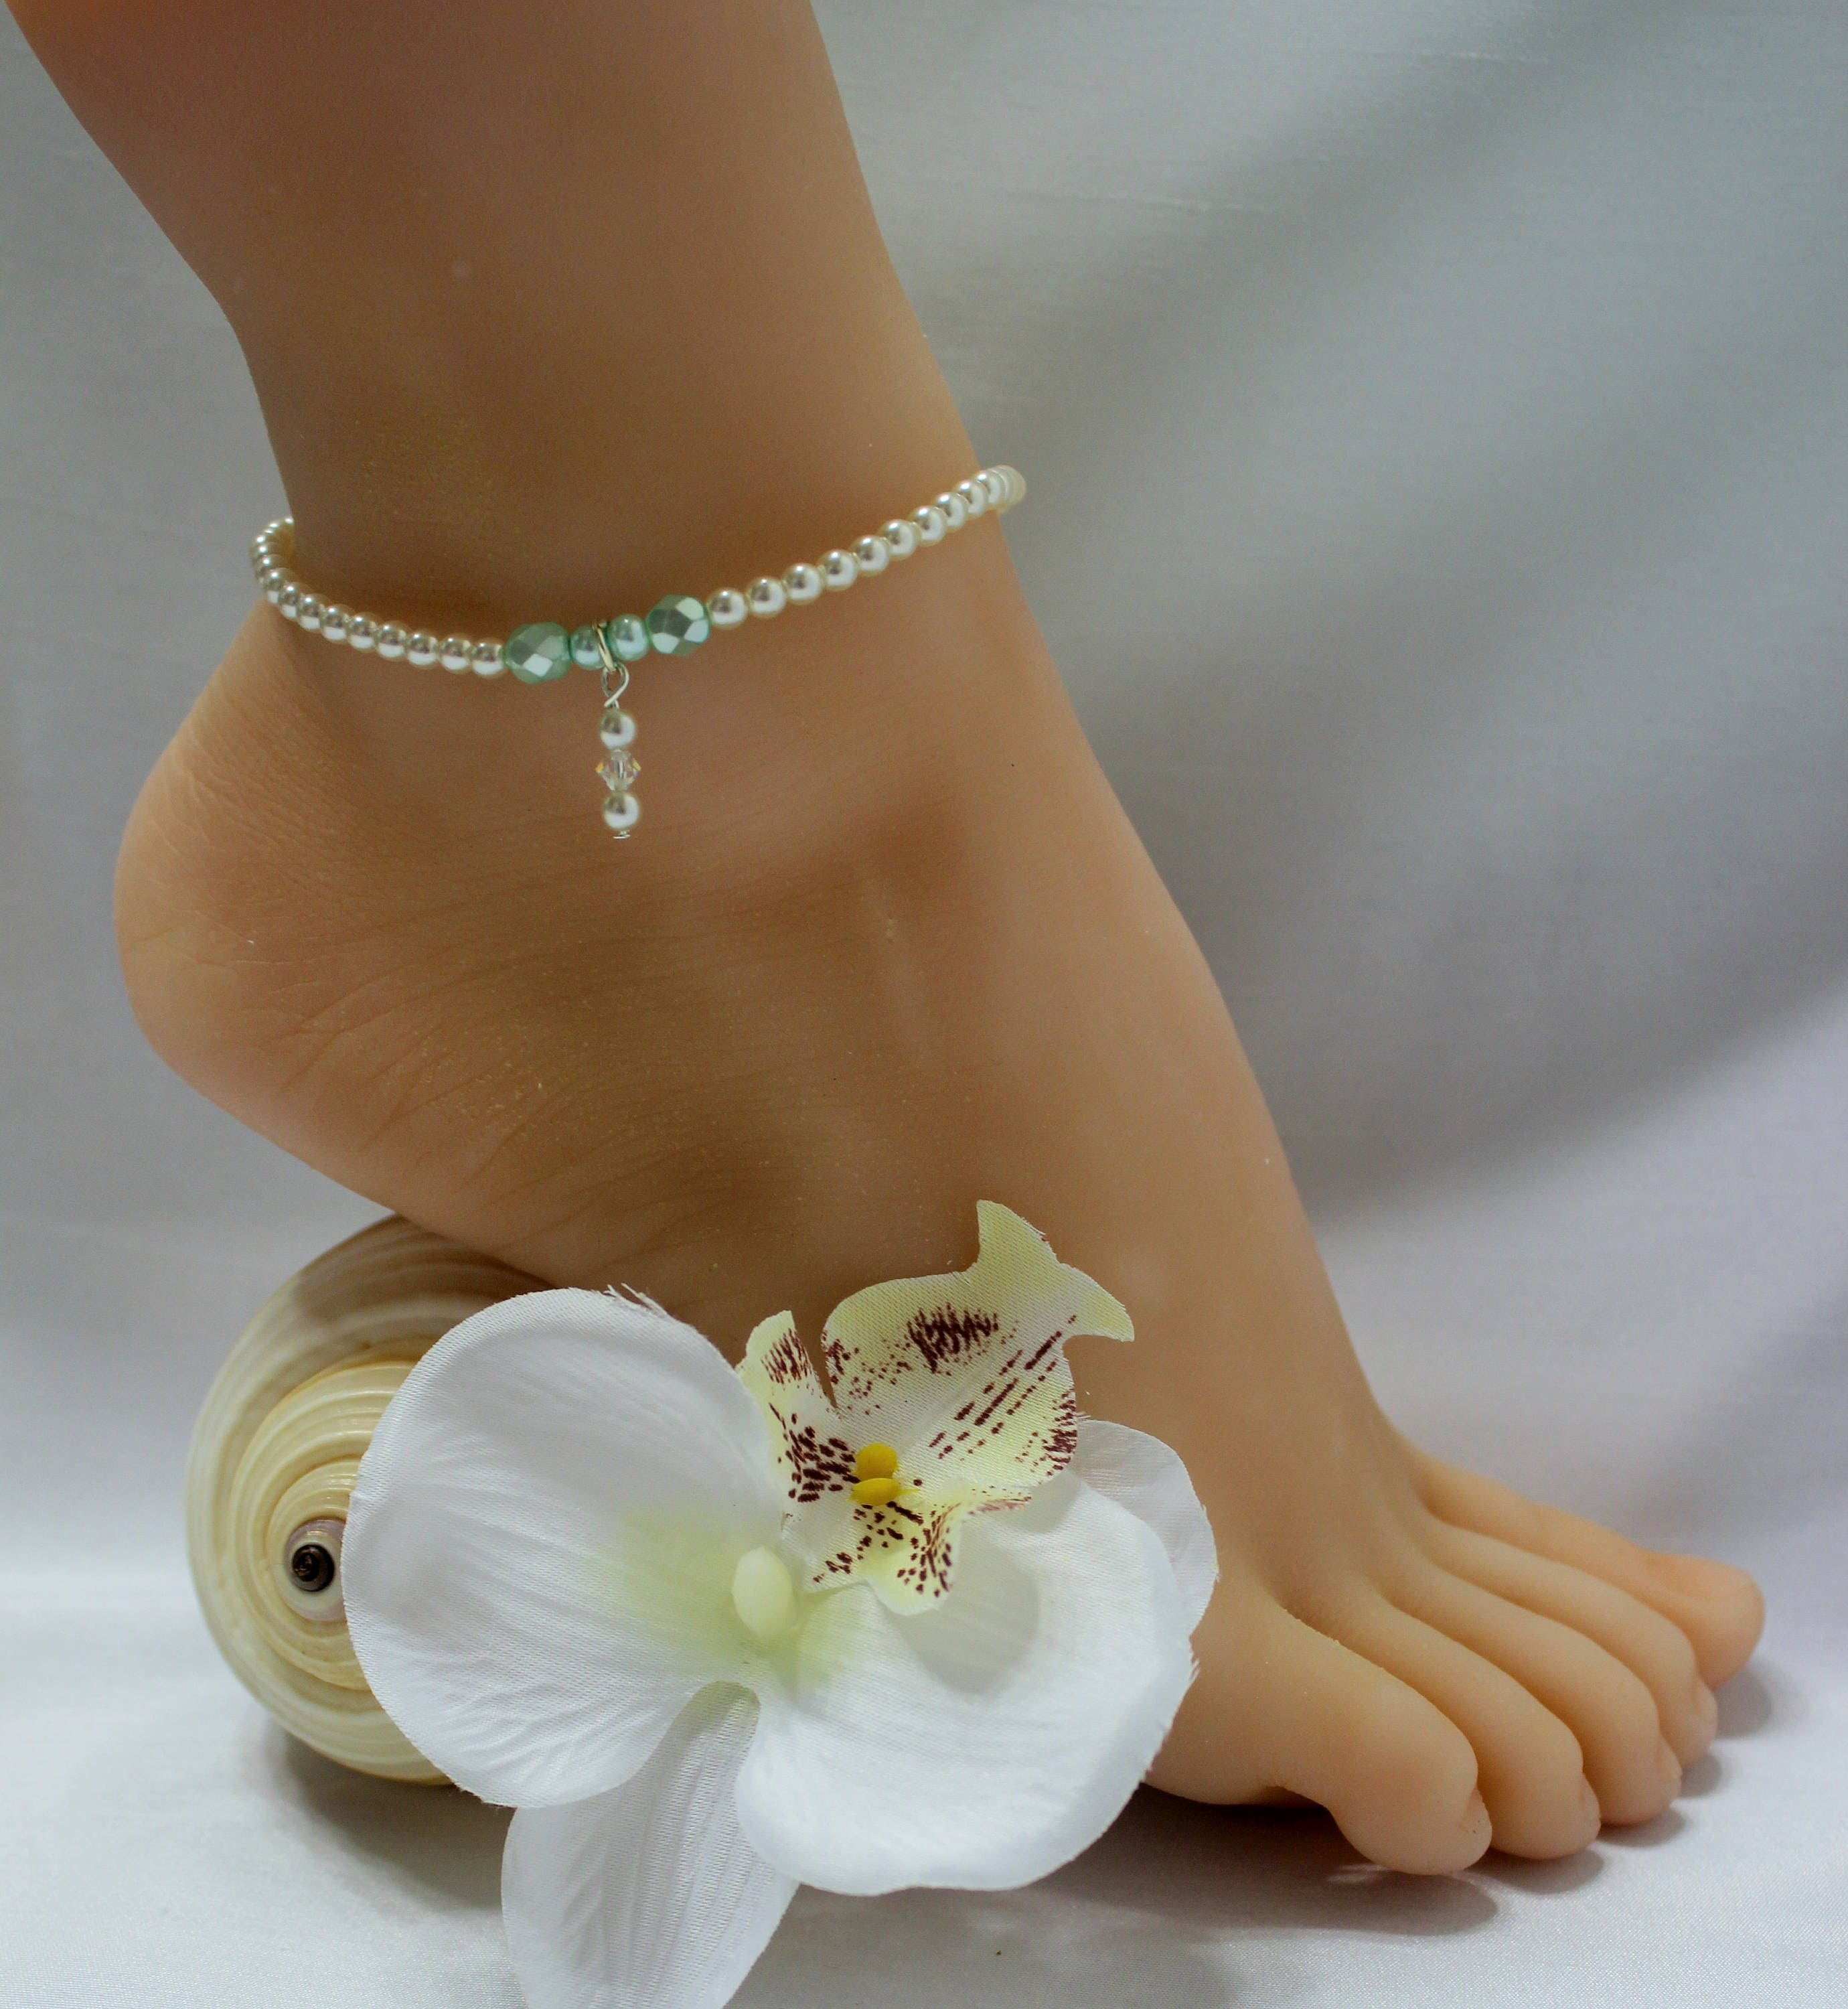 forever from com au htm anklet dress hitched shoes soles wedding indra jewelry